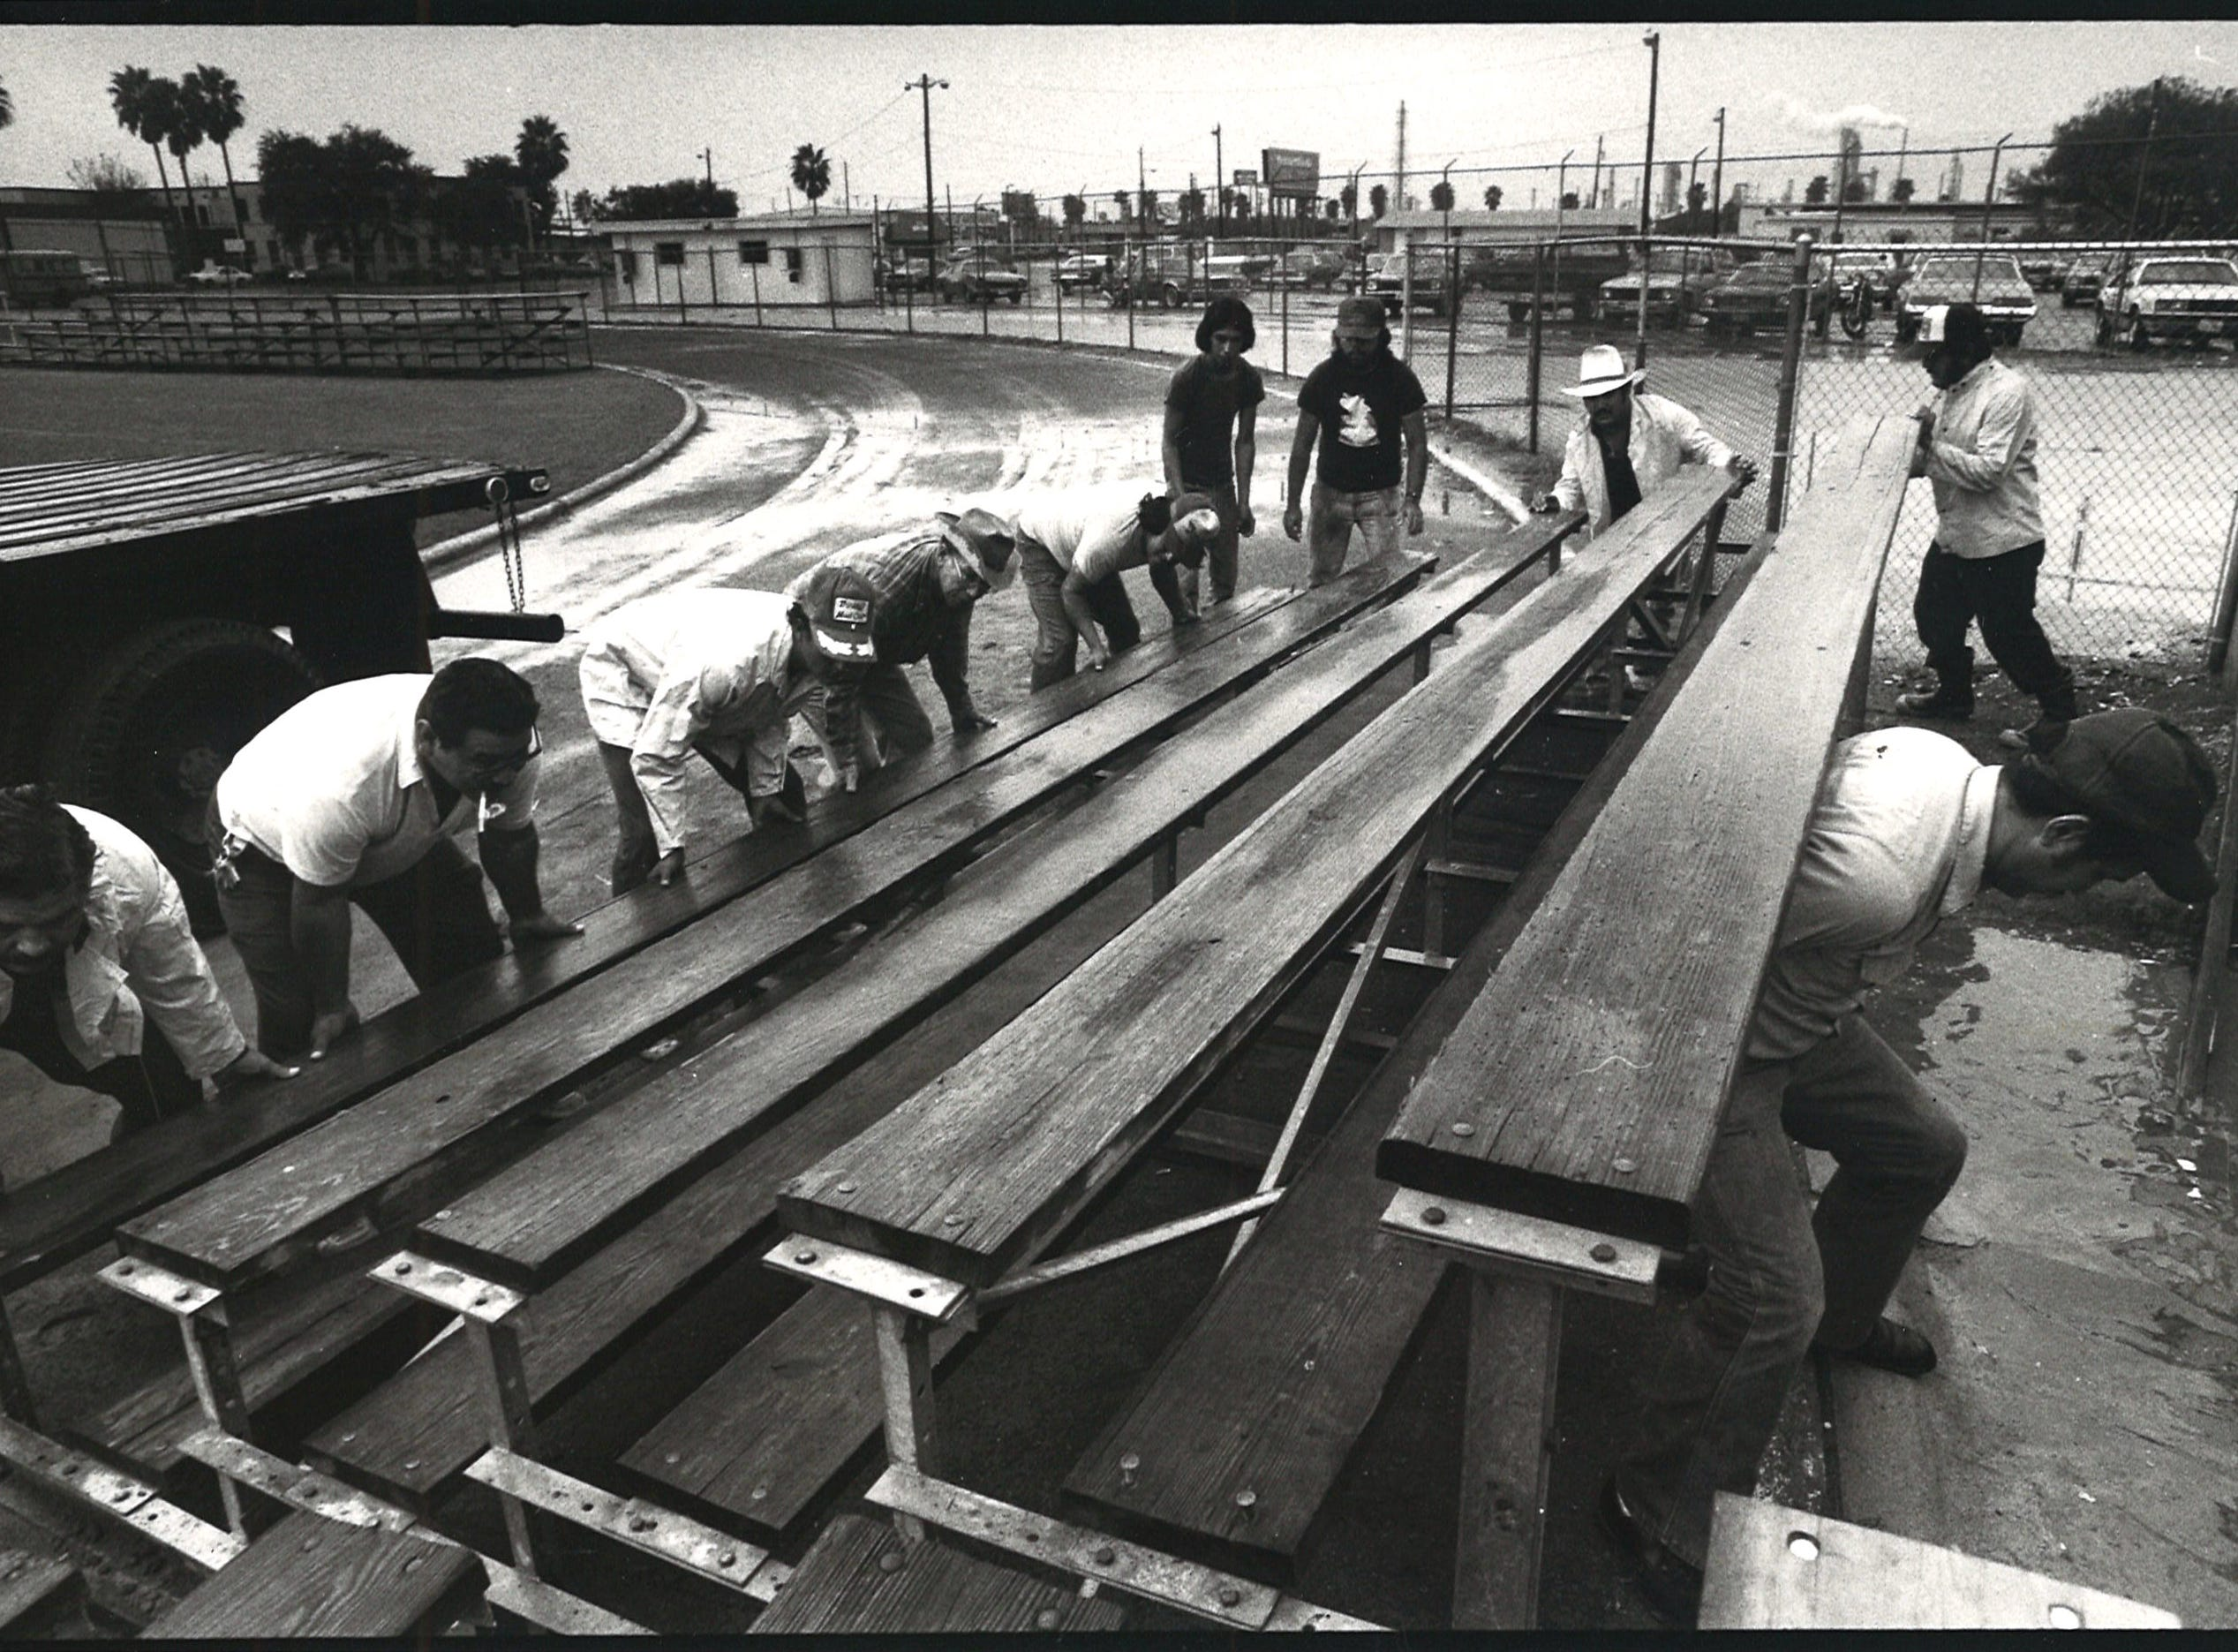 School district employees set up bleachers for the upcoming football games at Buc Stadium as it rains on Nov. 10, 1982.